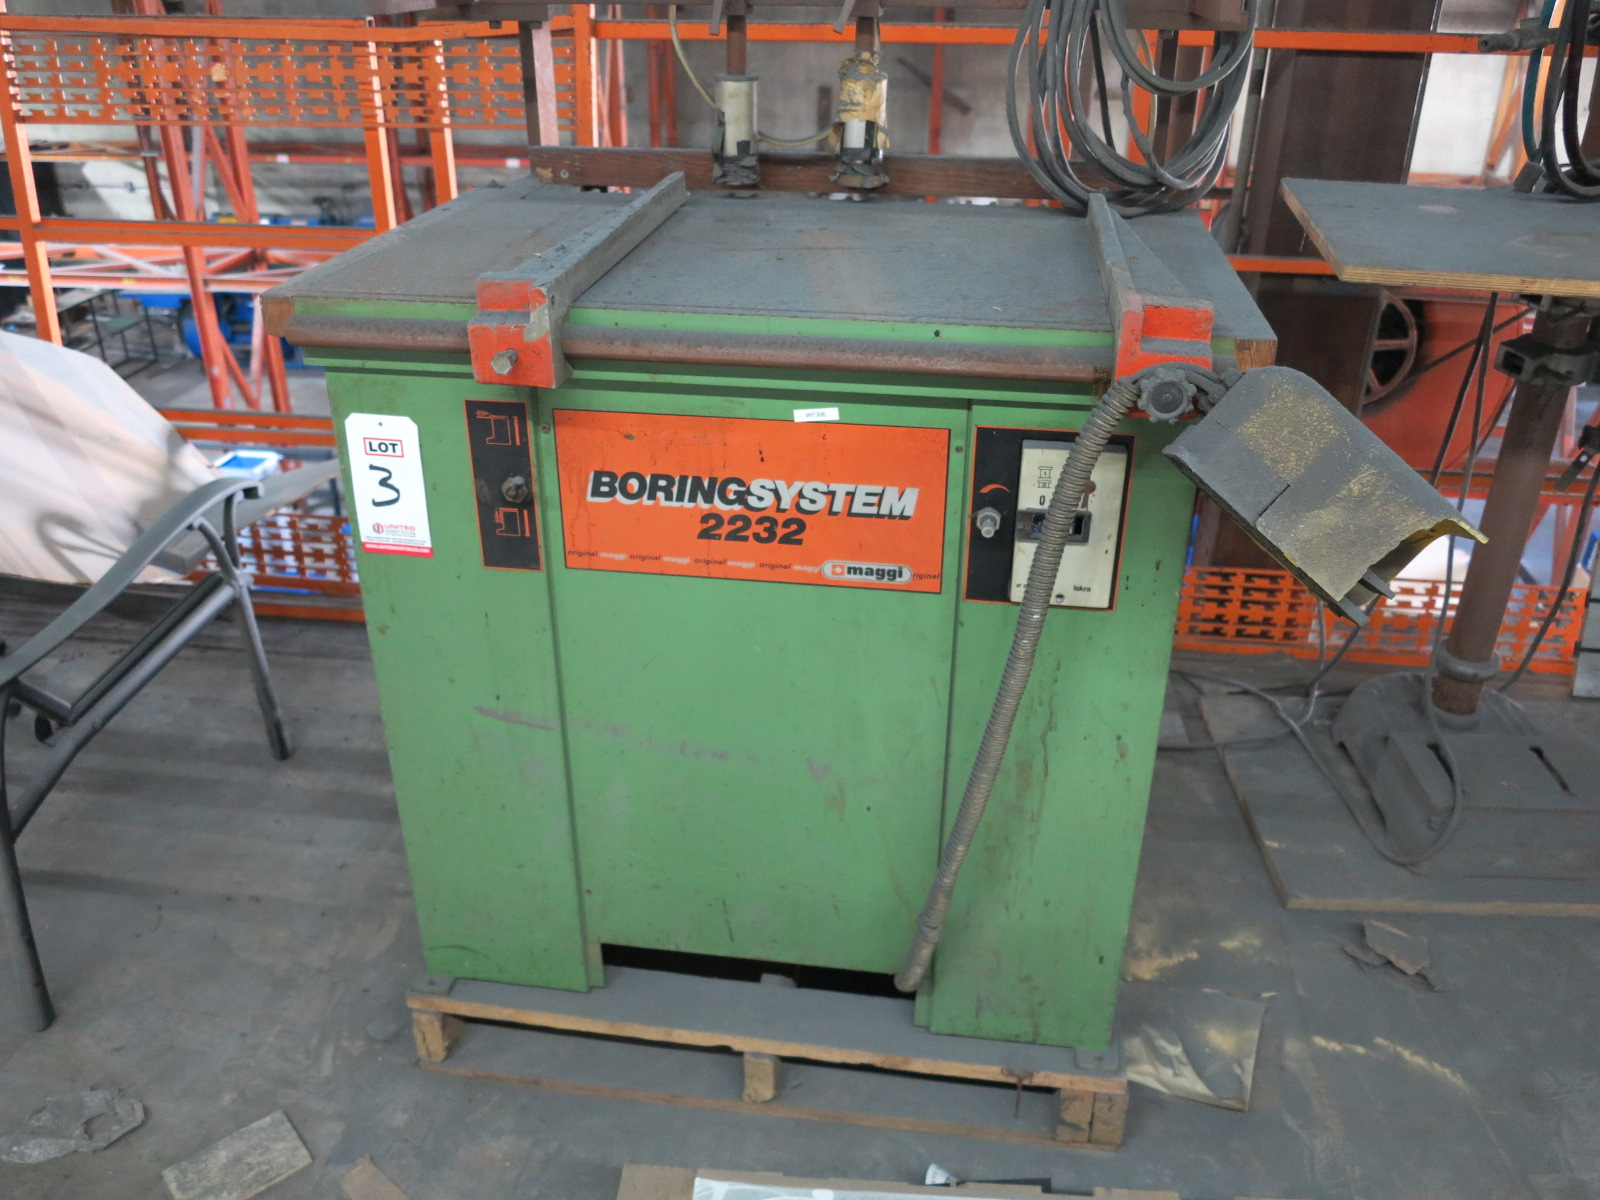 MAGGI BORING SYSTEM 2232, DOWEL DRILLING MACHINE, OUT OF SERVICE